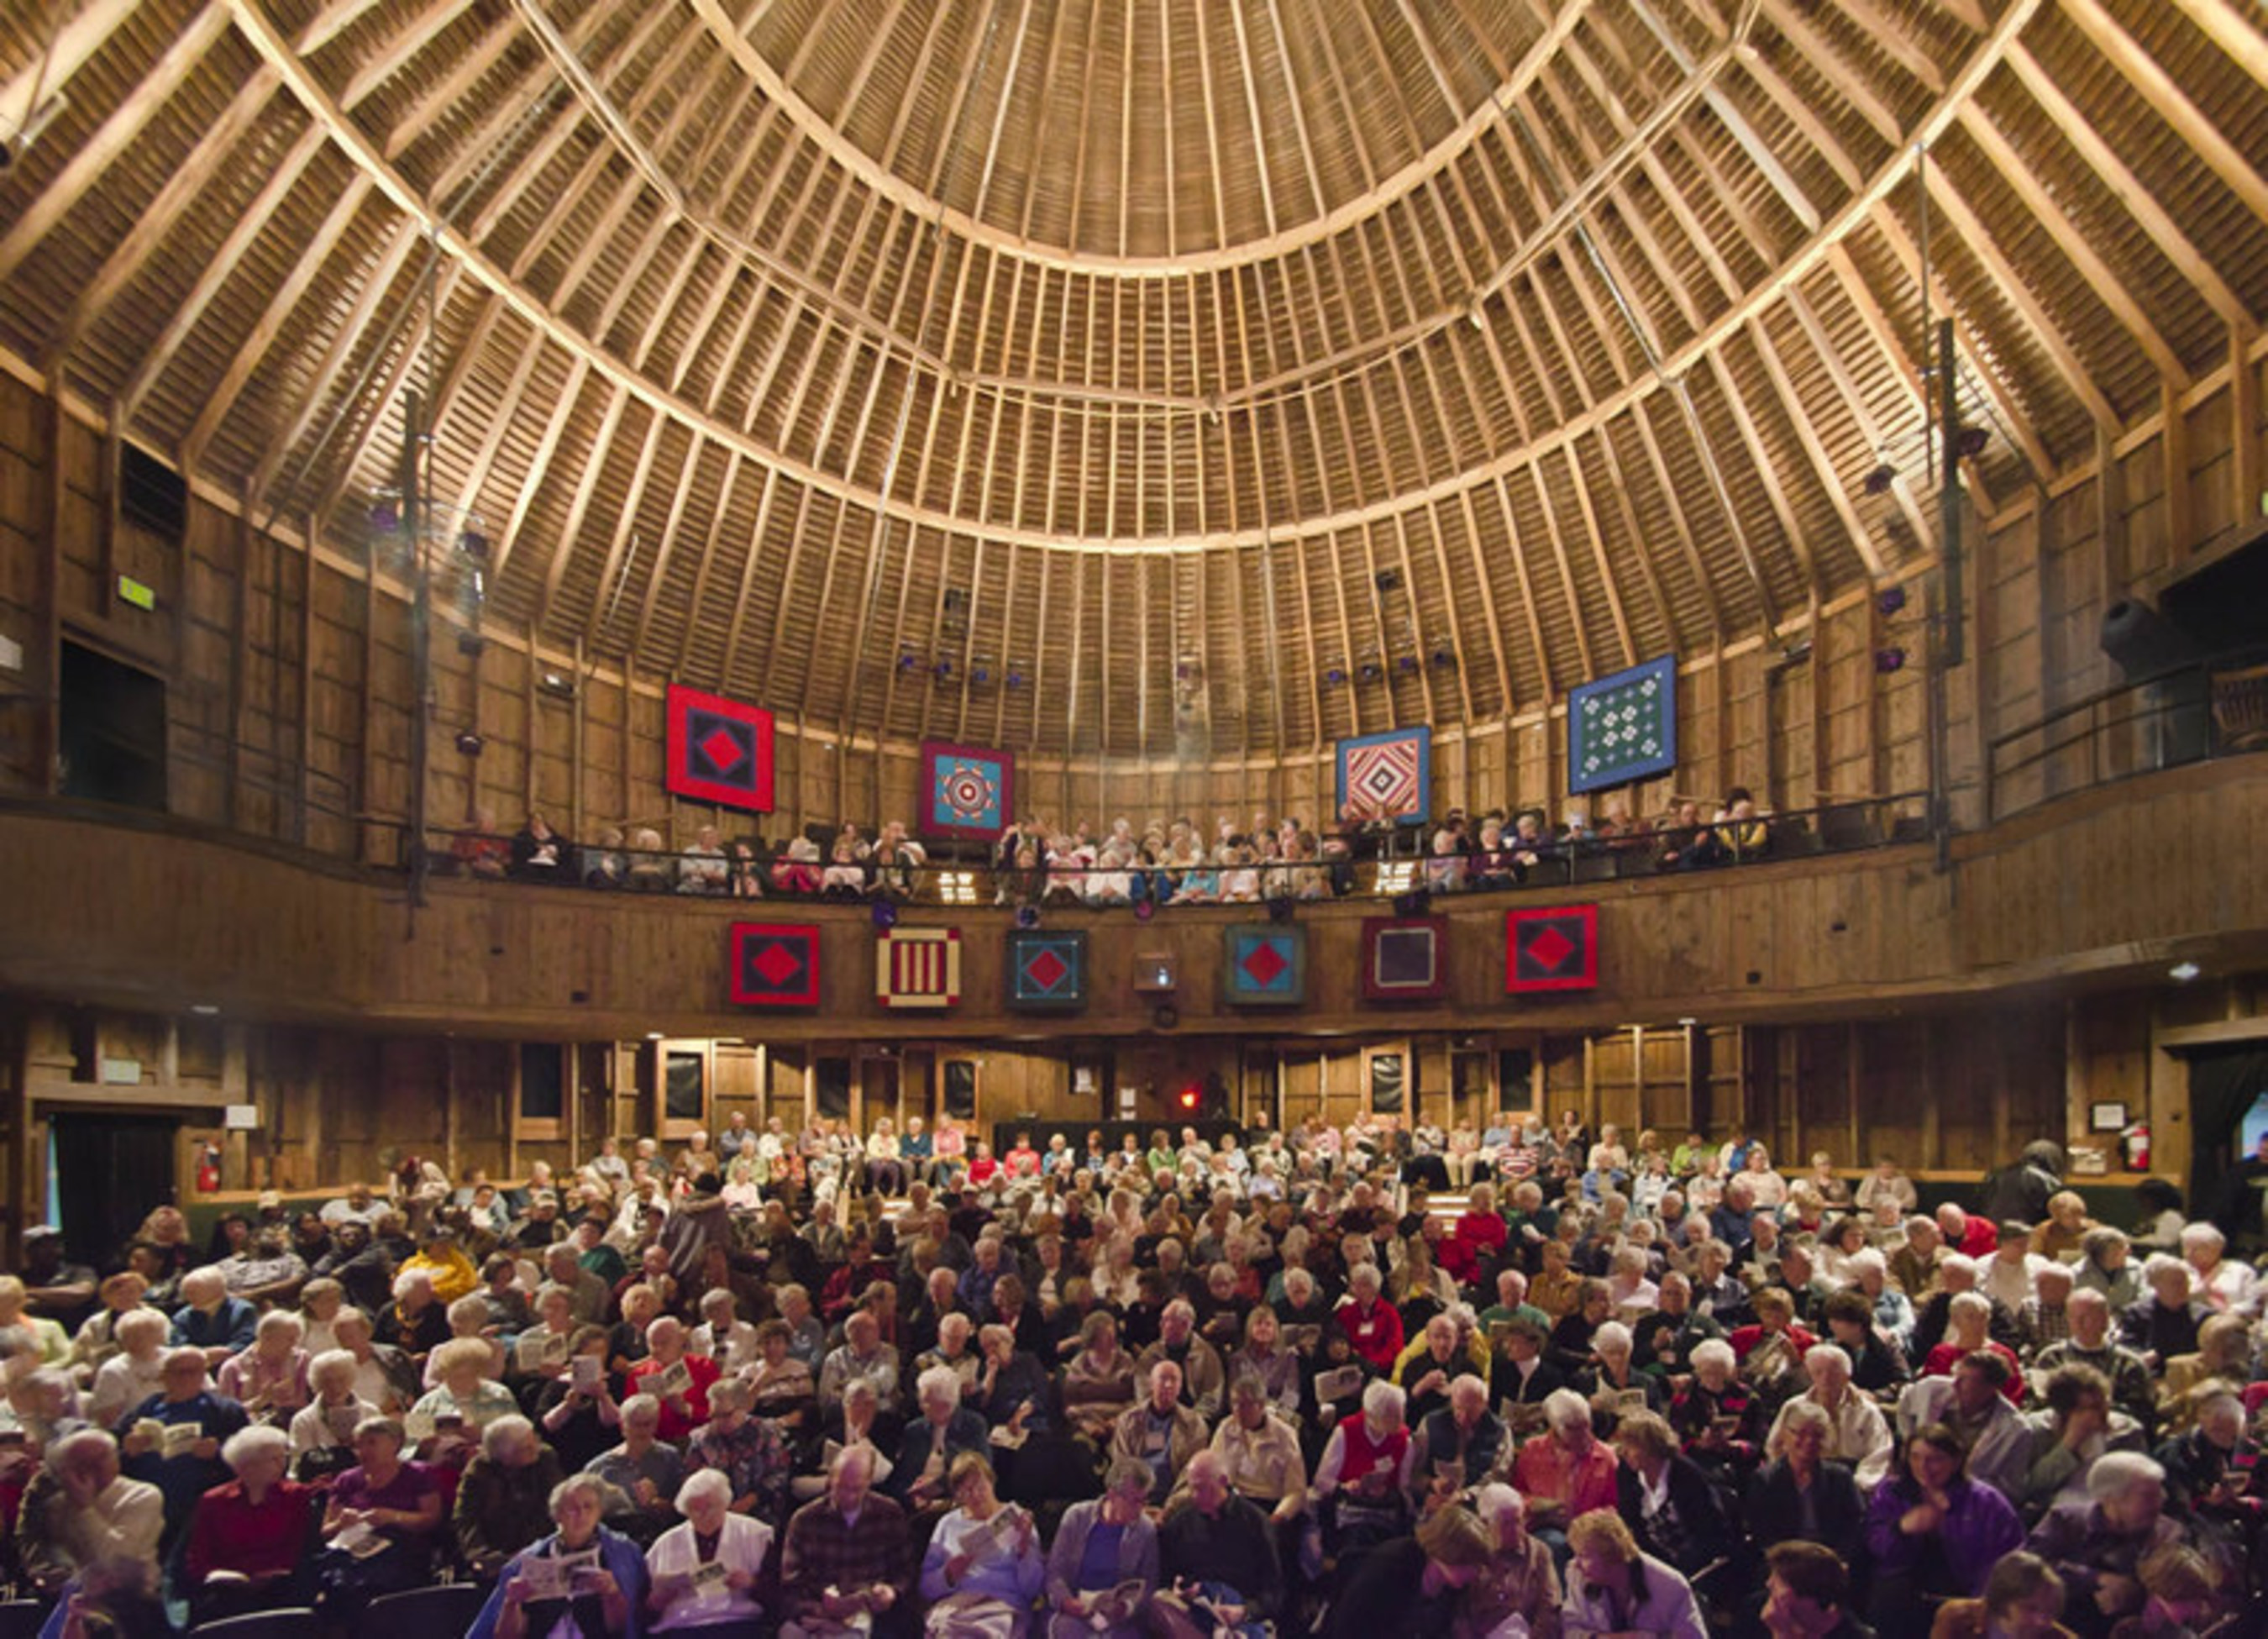 Light the Lights! Plain and Fancy Opens for the Thirtieth Season in The Round Barn Theatre at Amish Acres